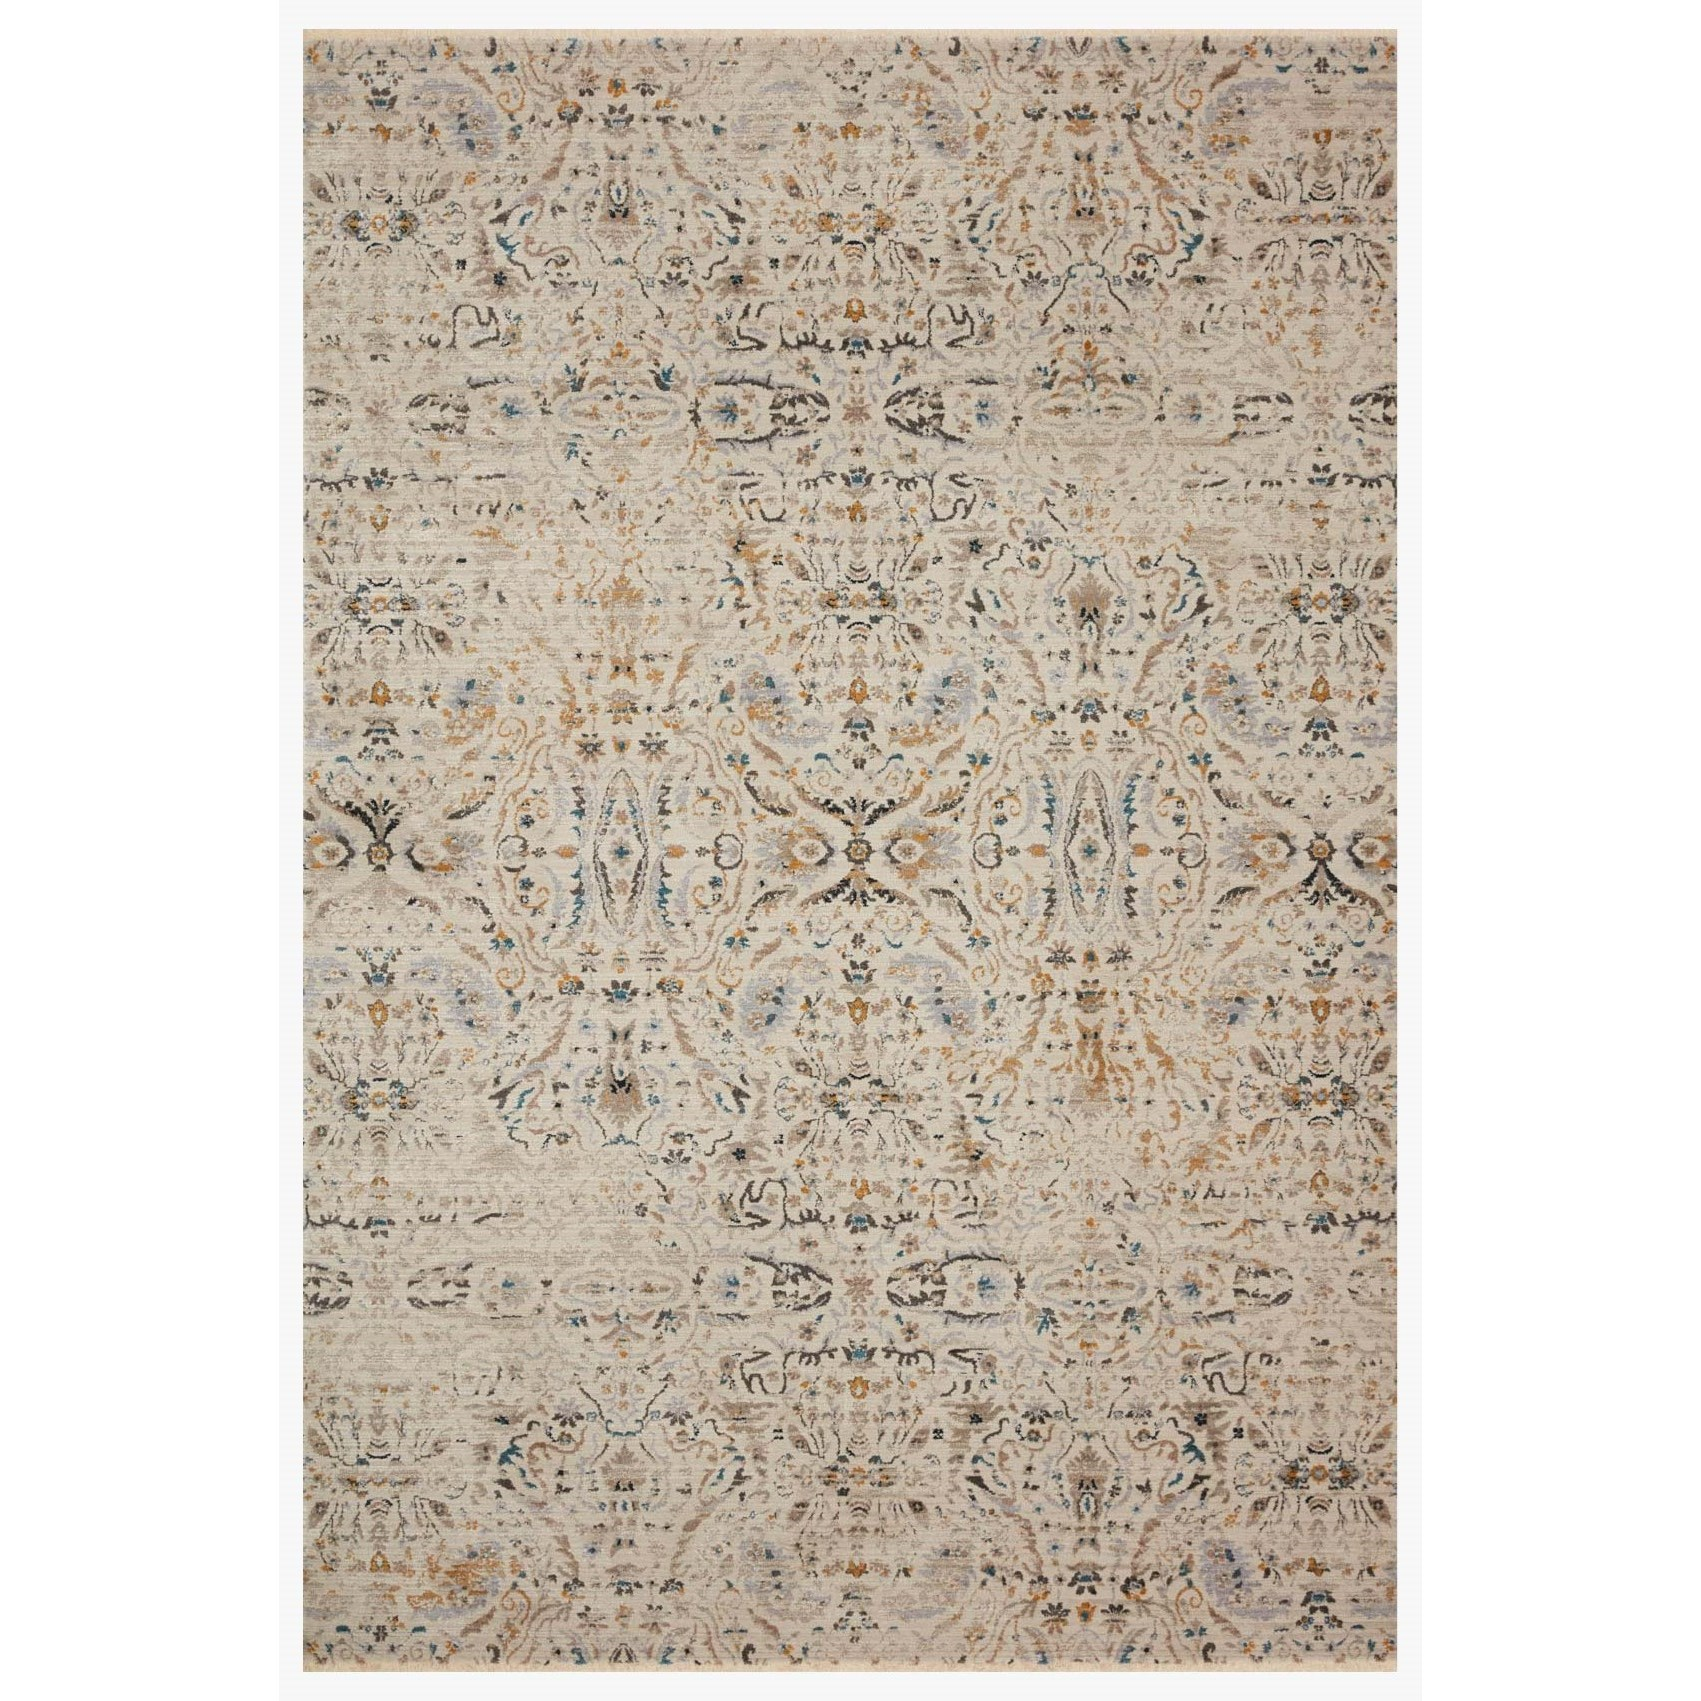 "Leigh 6'7"" x 9'6"" Ivory / Straw Rug by Loloi Rugs at Belfort Furniture"